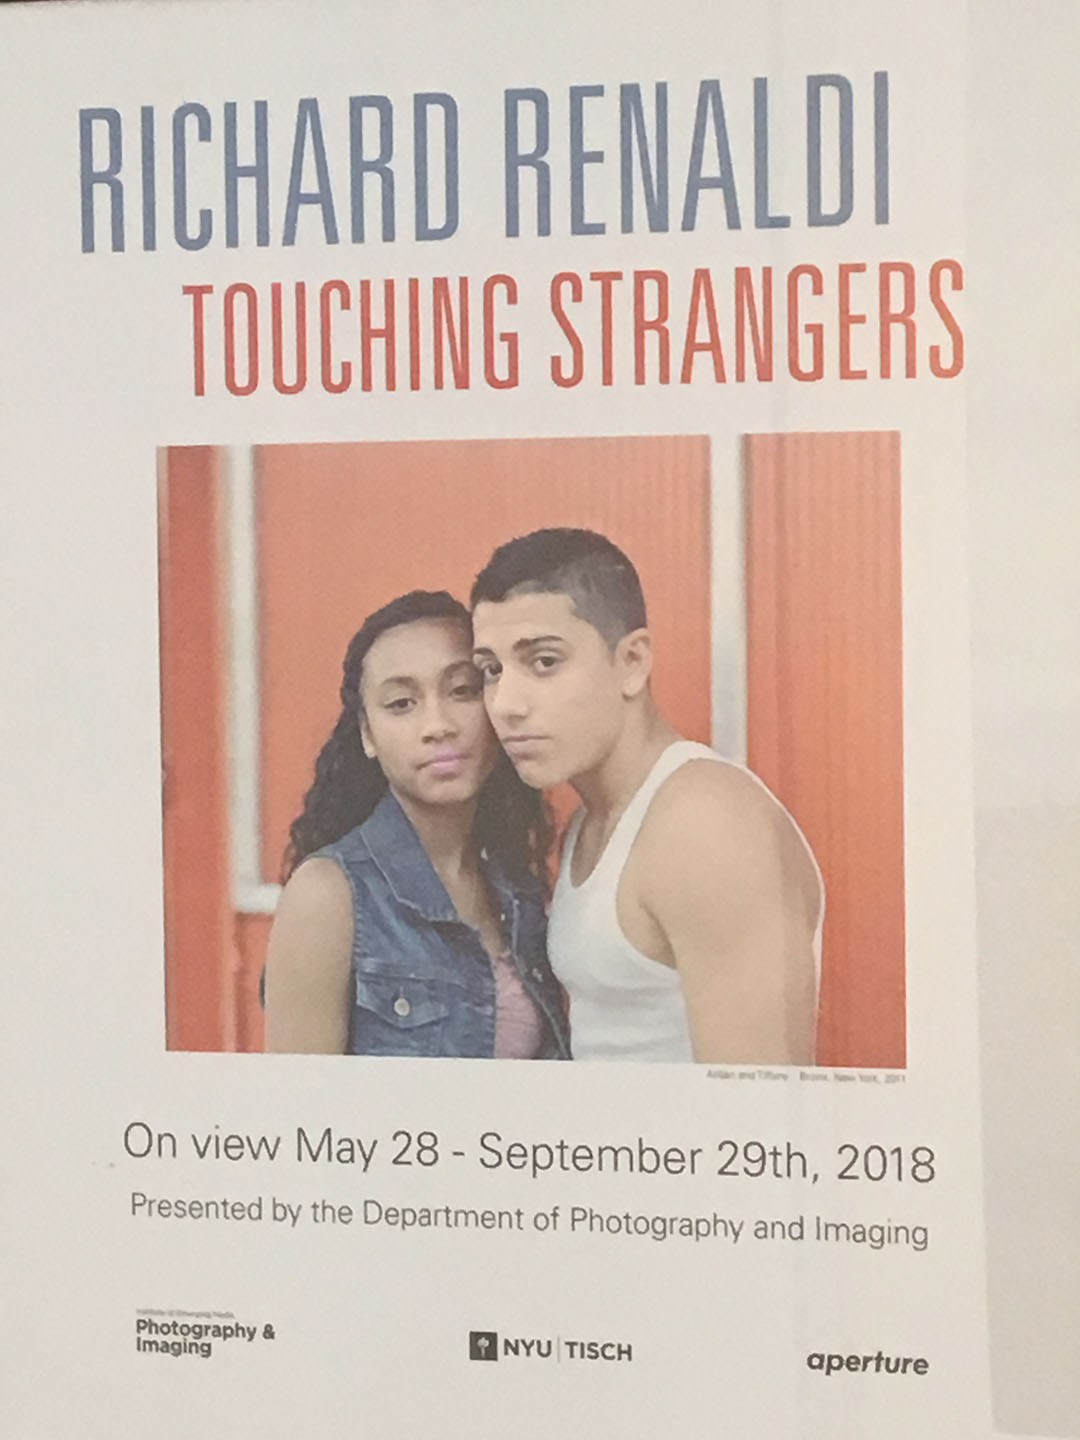 06_RichardRenaldi_TouchingStrangers copy.JPG